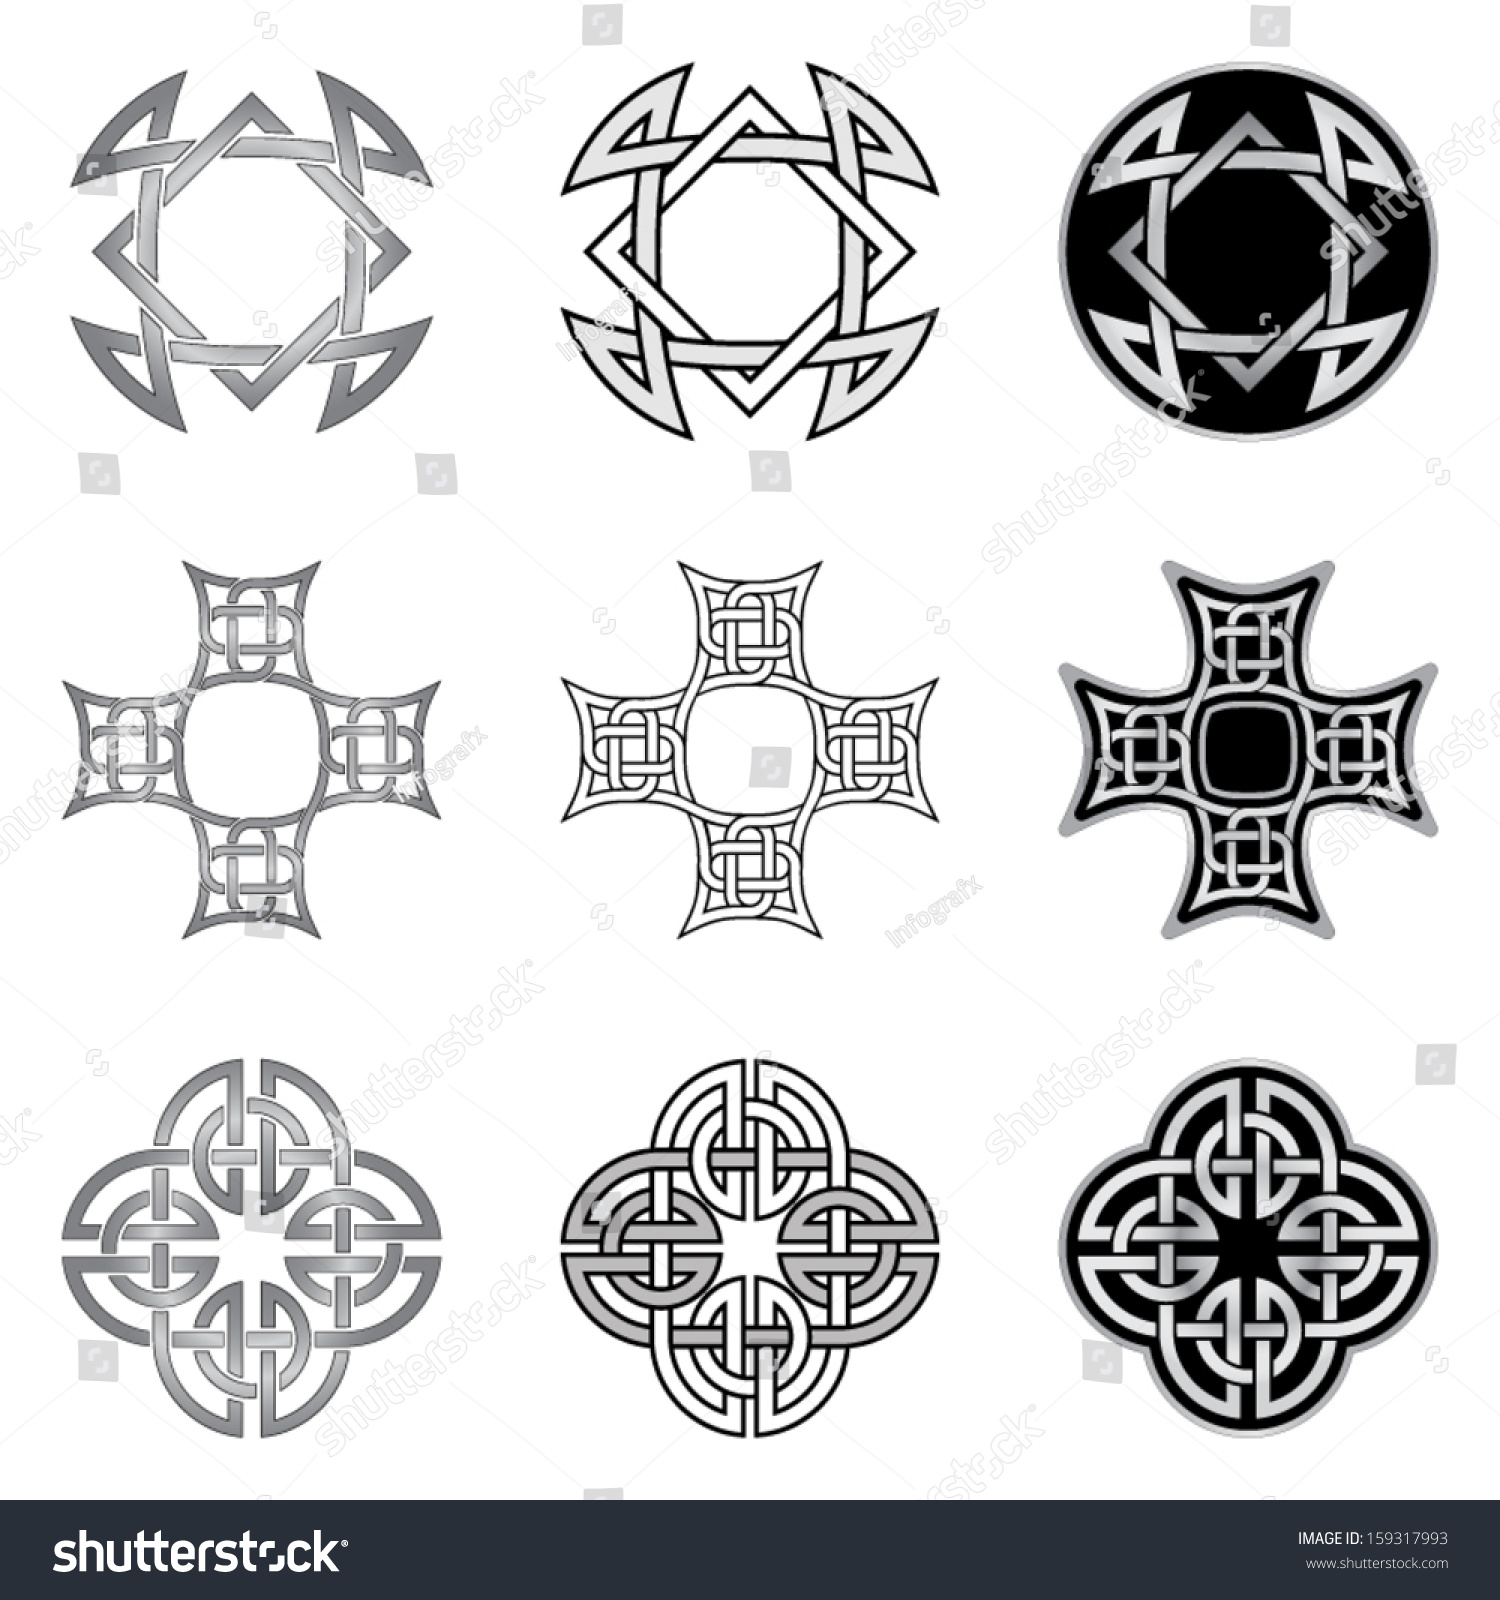 Celtic Knot Patterns Templates Stock Vector Royalty Free 159317993